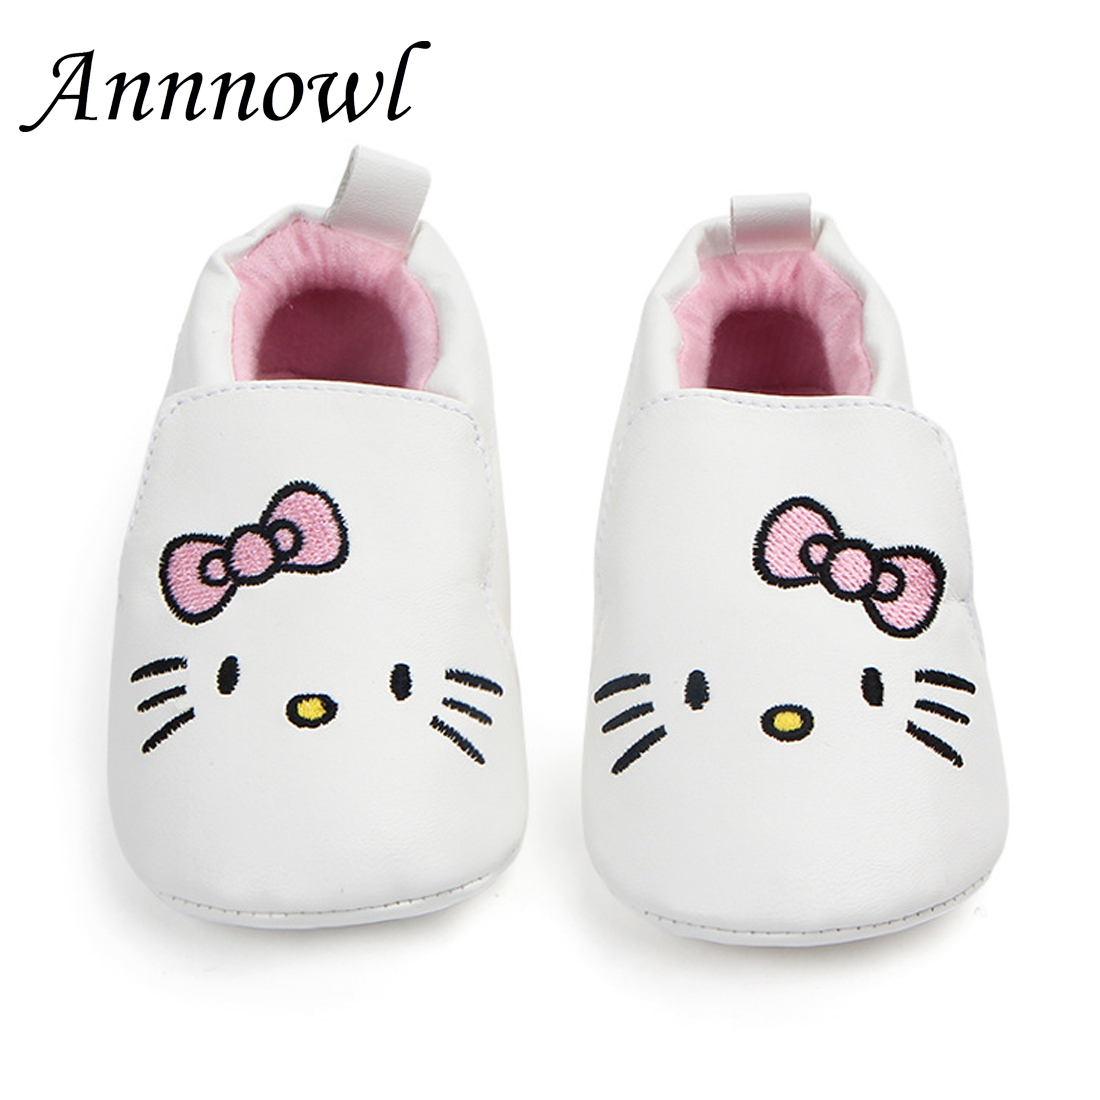 Baby Crib Shoes Fashion Trainers Slip on Infant Girls Shoes for 1 Year Old Leather Soft  ...